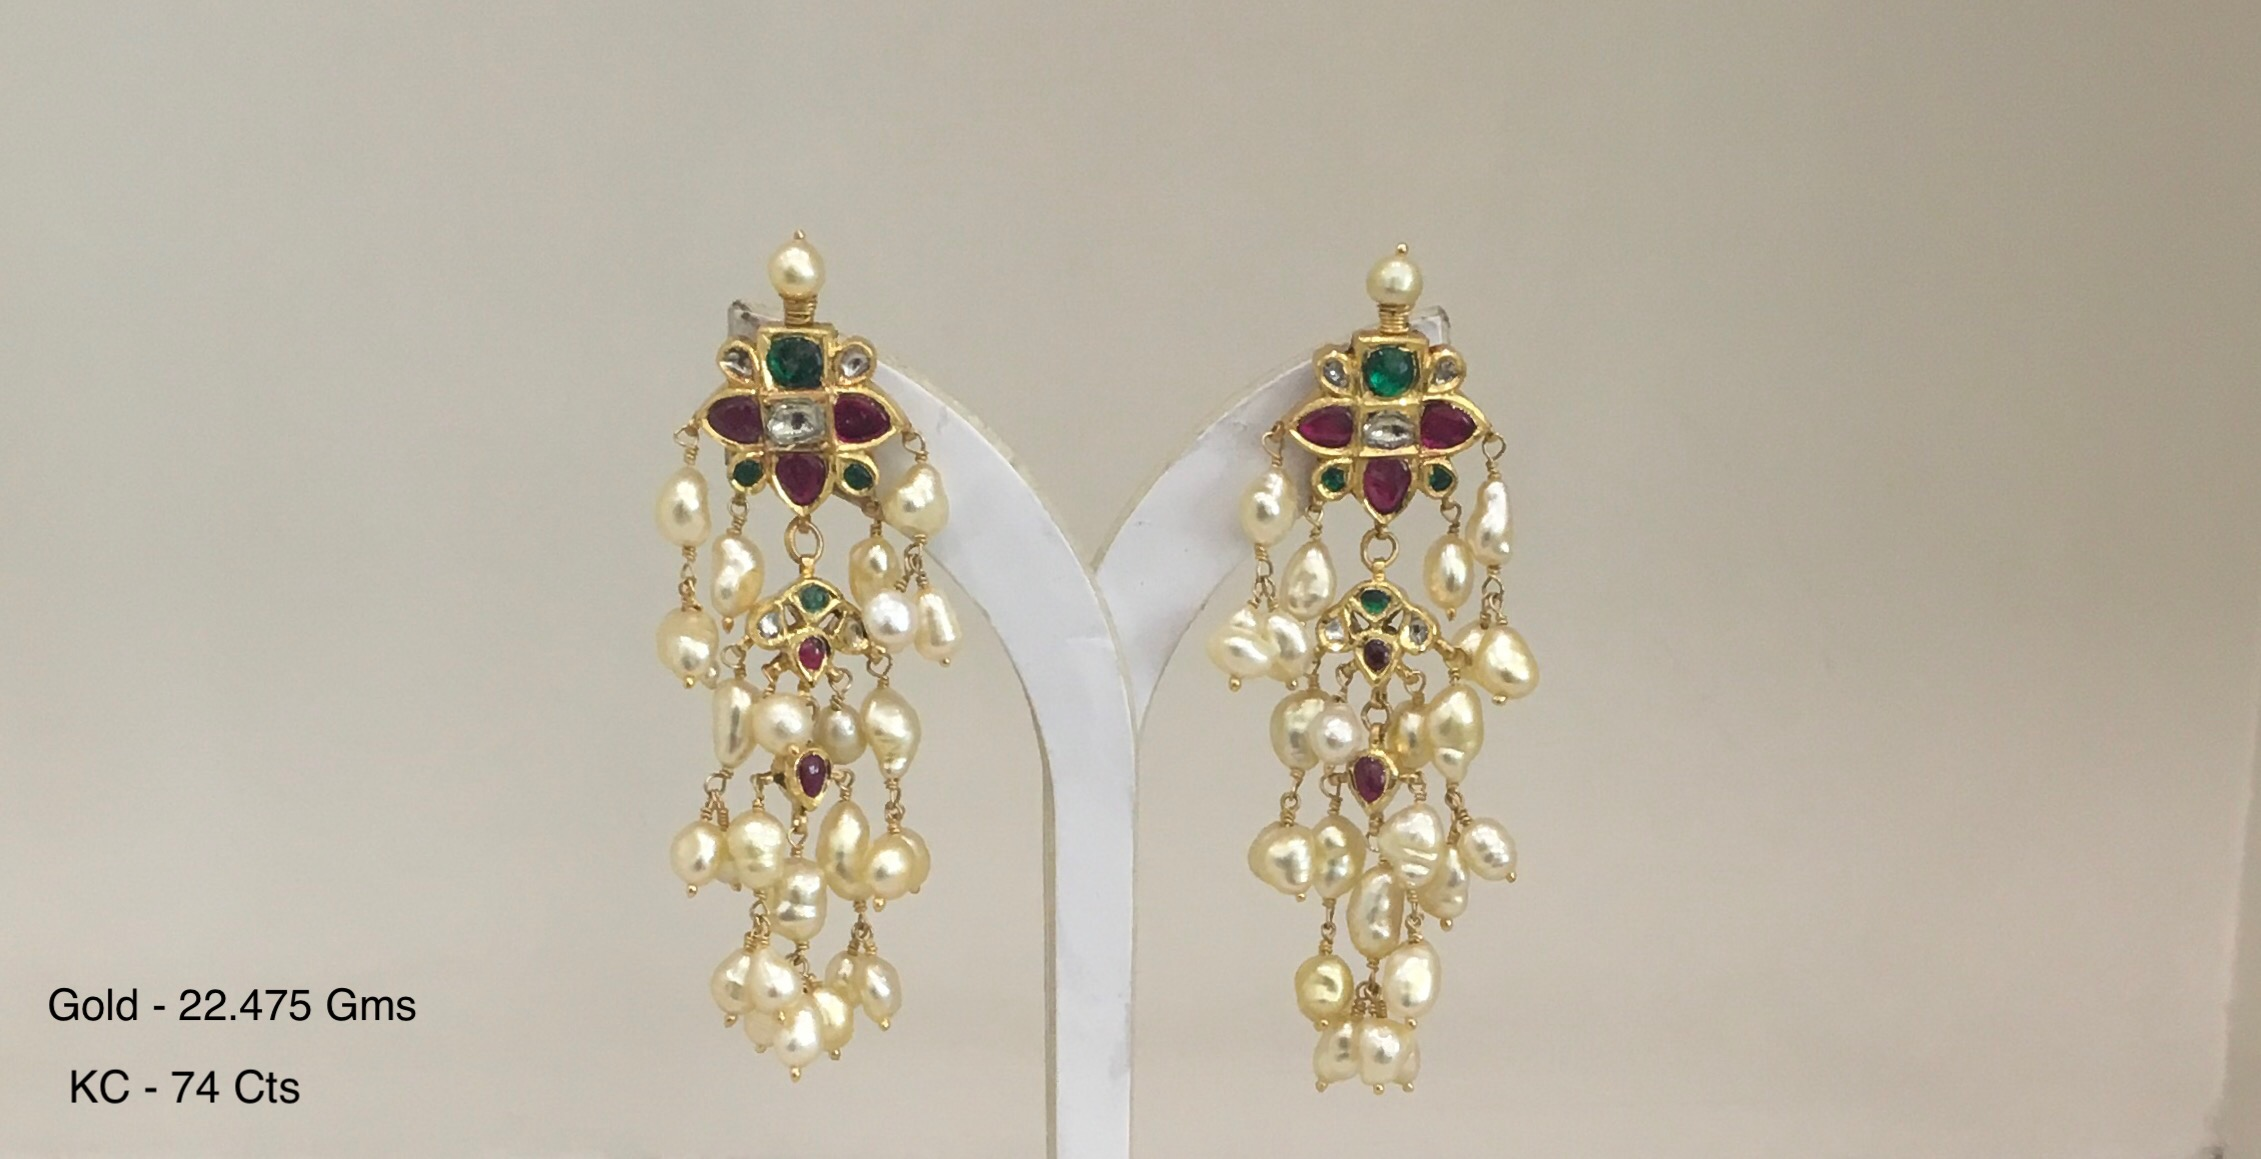 GOTTAPUSALU EARRINGS